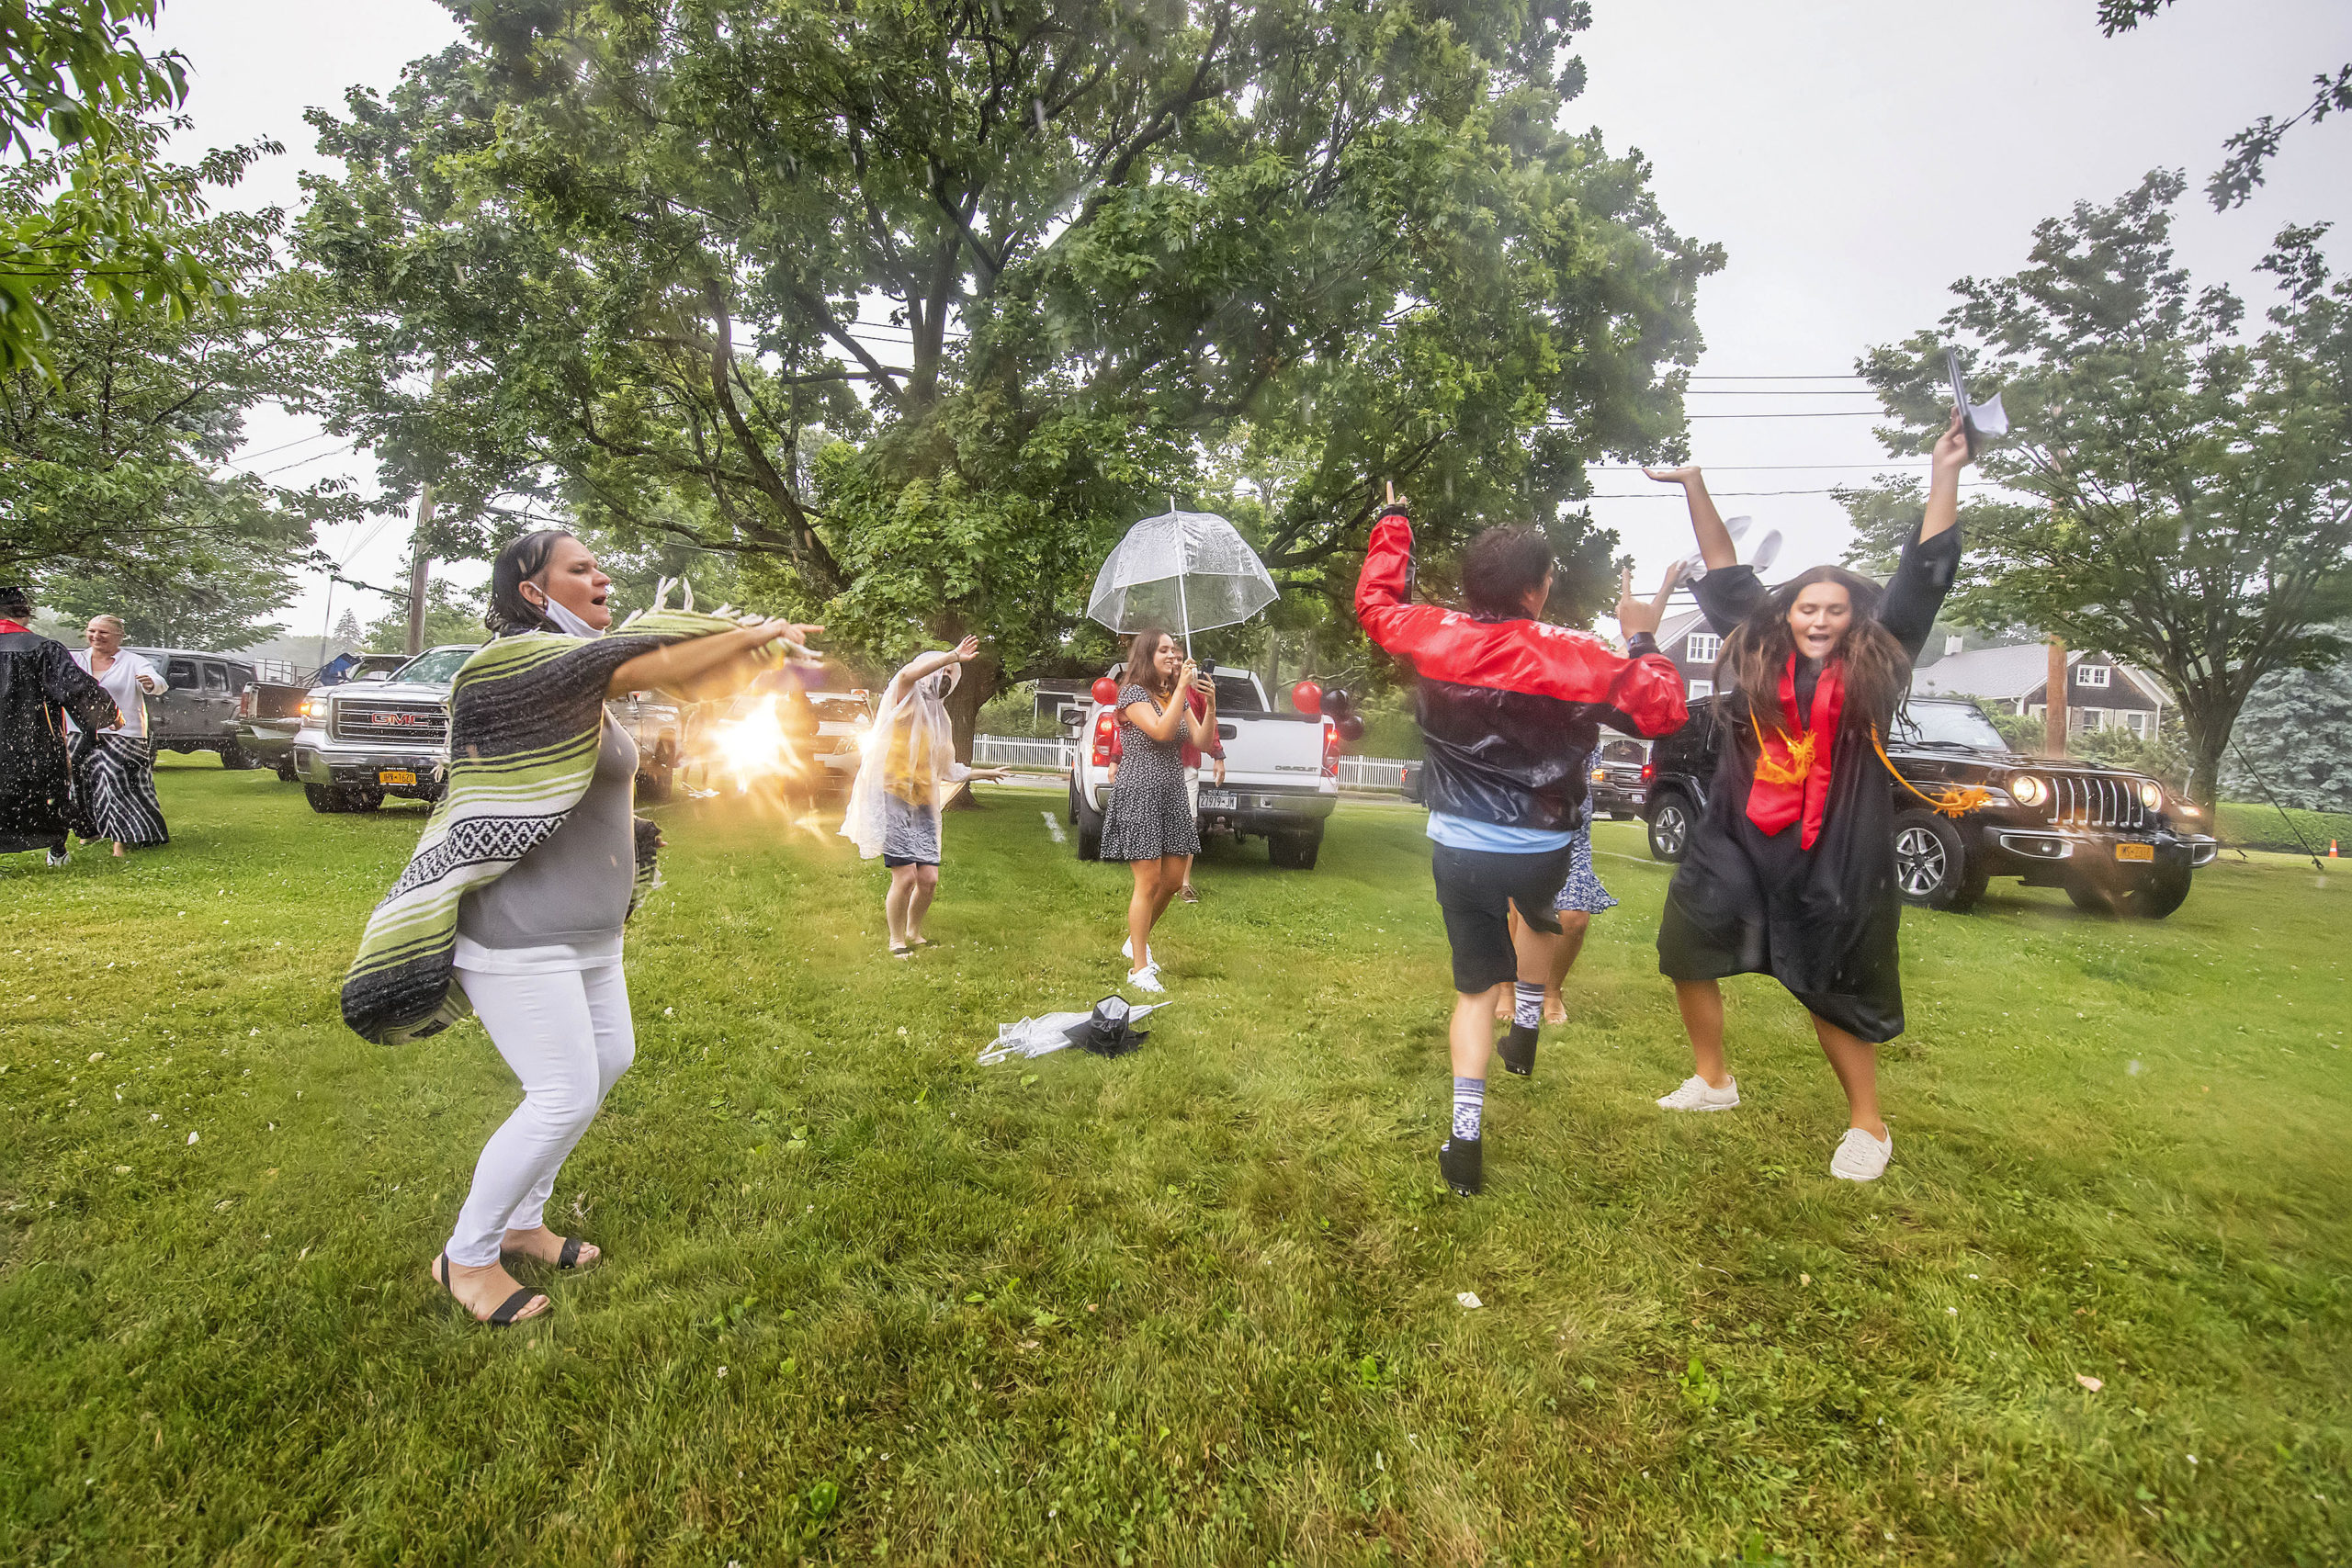 The Nill family dances for joy in the rain after daughter Haley - at far right- graduated in the Pierson High School 2020 Commencement Ceremony at Pierson High School on Saturday.